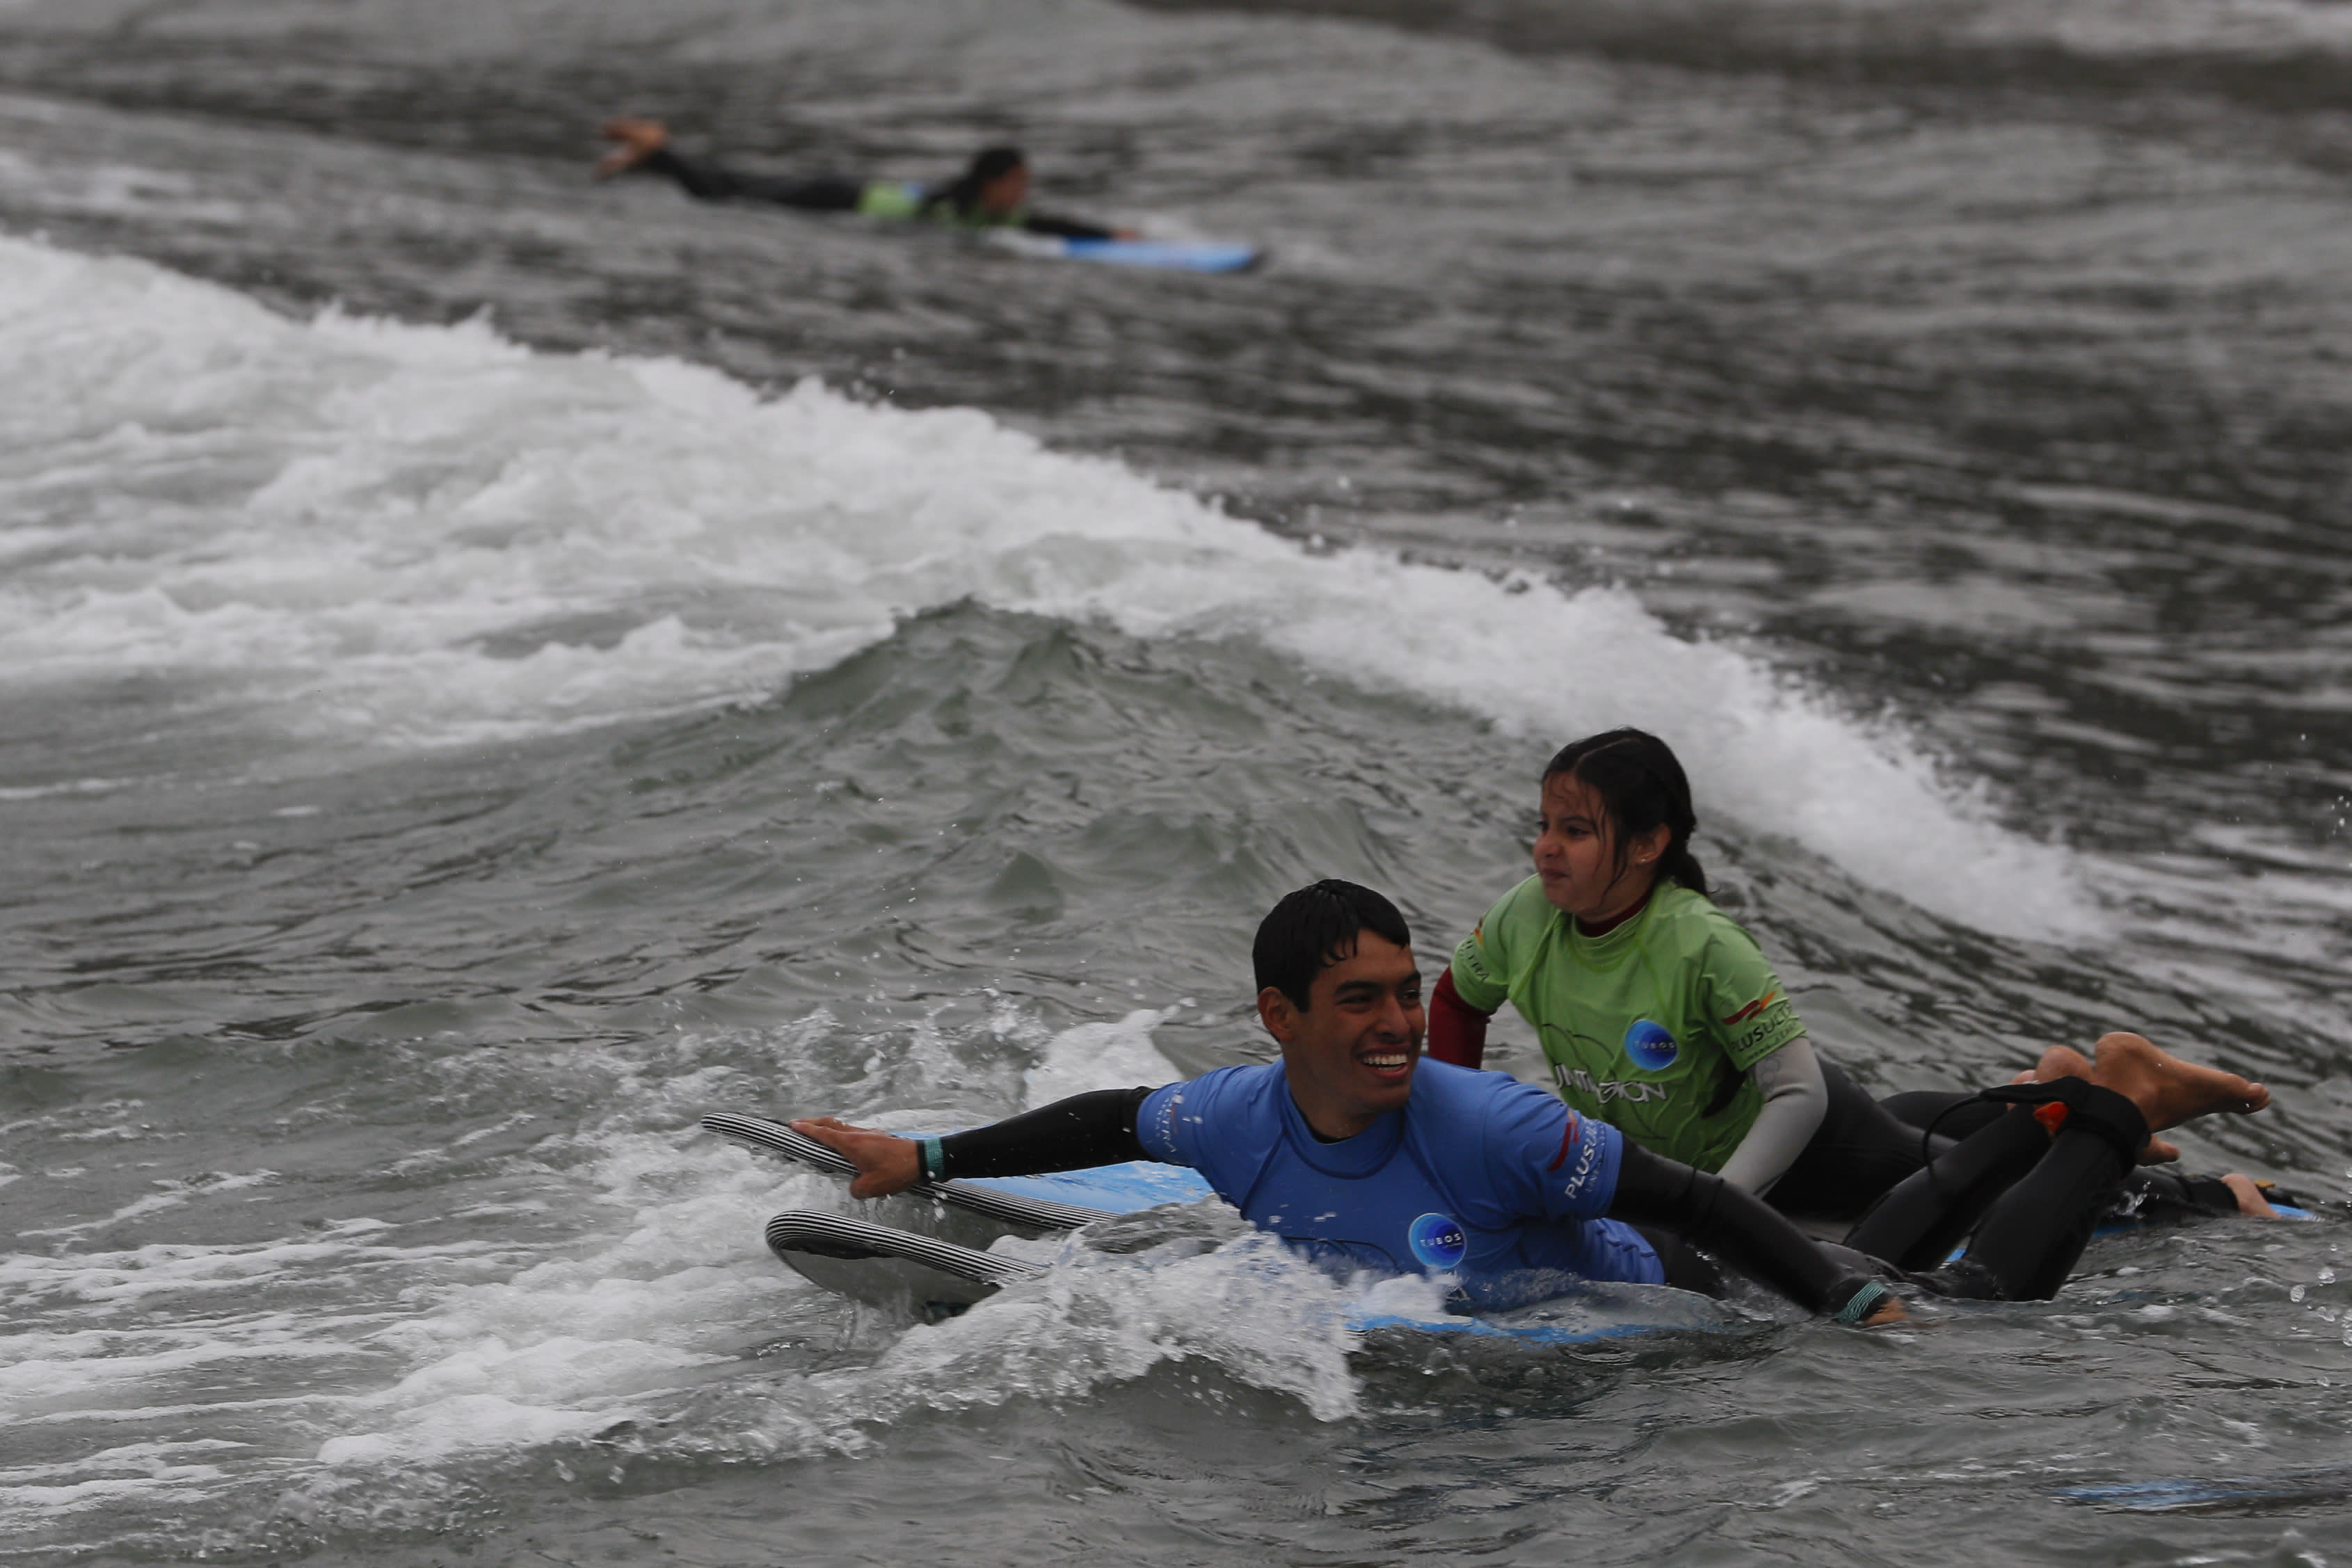 An instructor tows out a young student for a surf lesson at Barranquito beach in Lima, Peru, Thursday, July 25, 2019. Today, dozens of schools teach tourists from across the world how to ride waves at beaches with Hawaiian names in Lima's Miraflores district, while professional surfers from across the Americas prepare to compete when the sport is featured for the first time in the Pan American Games in the Peruvian capital.(AP Photo/Rebecca Blackwell)